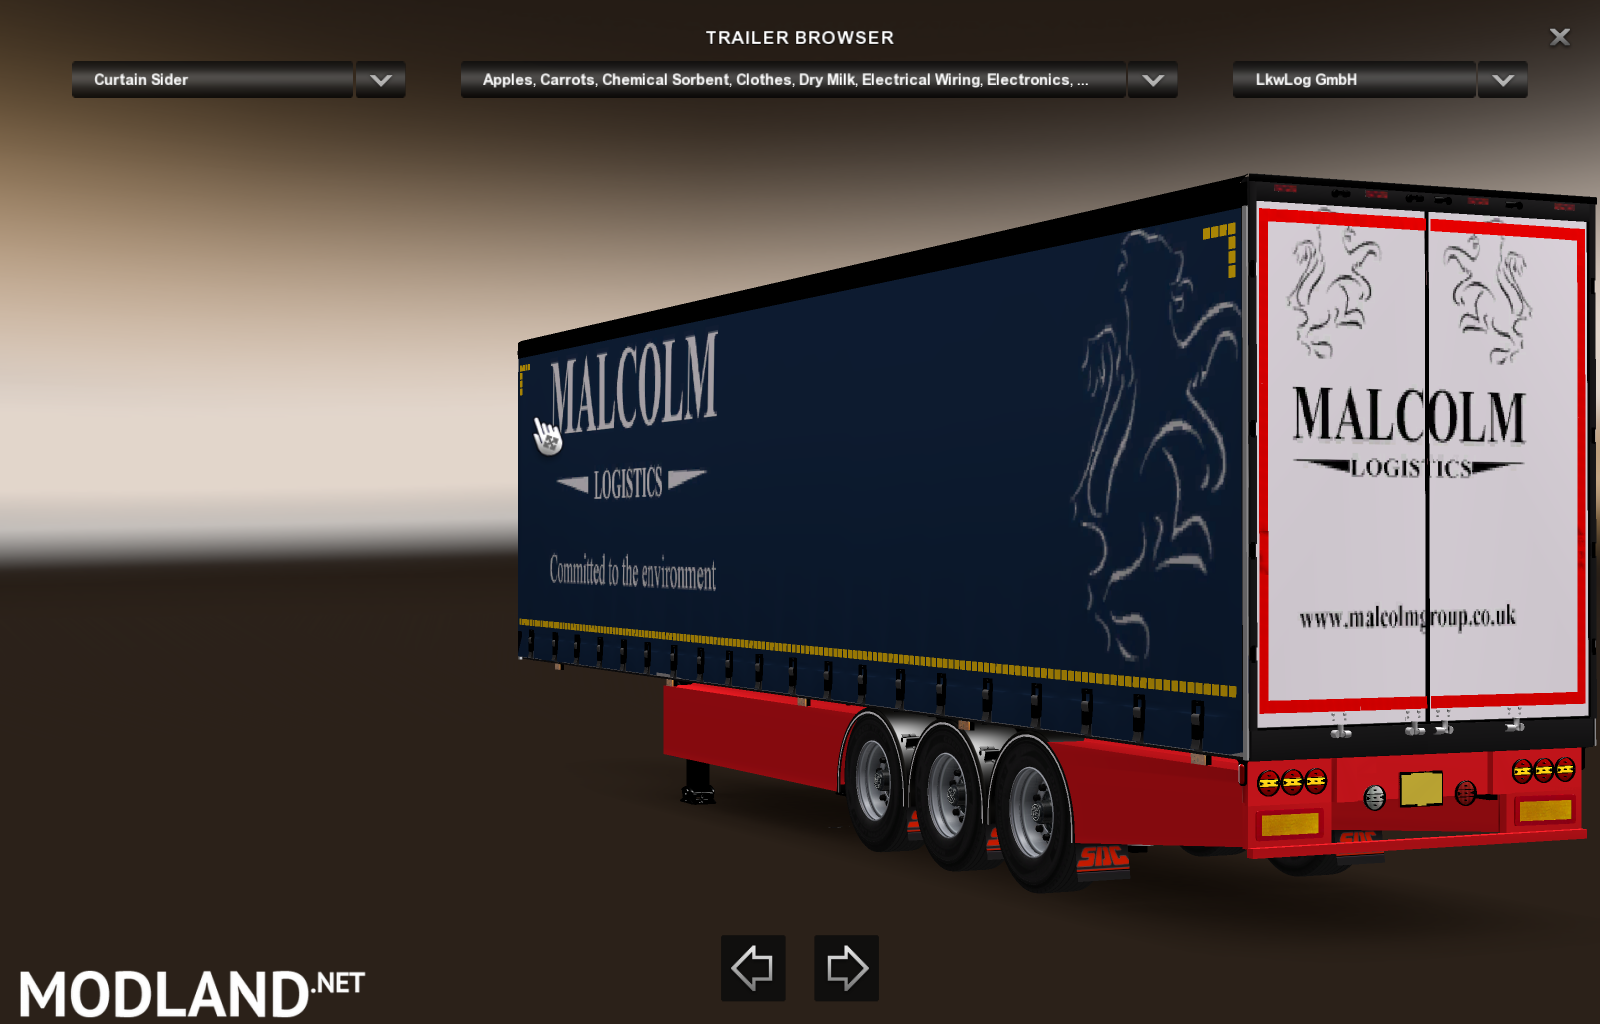 scttish company sdc trailers mod for ETS 2